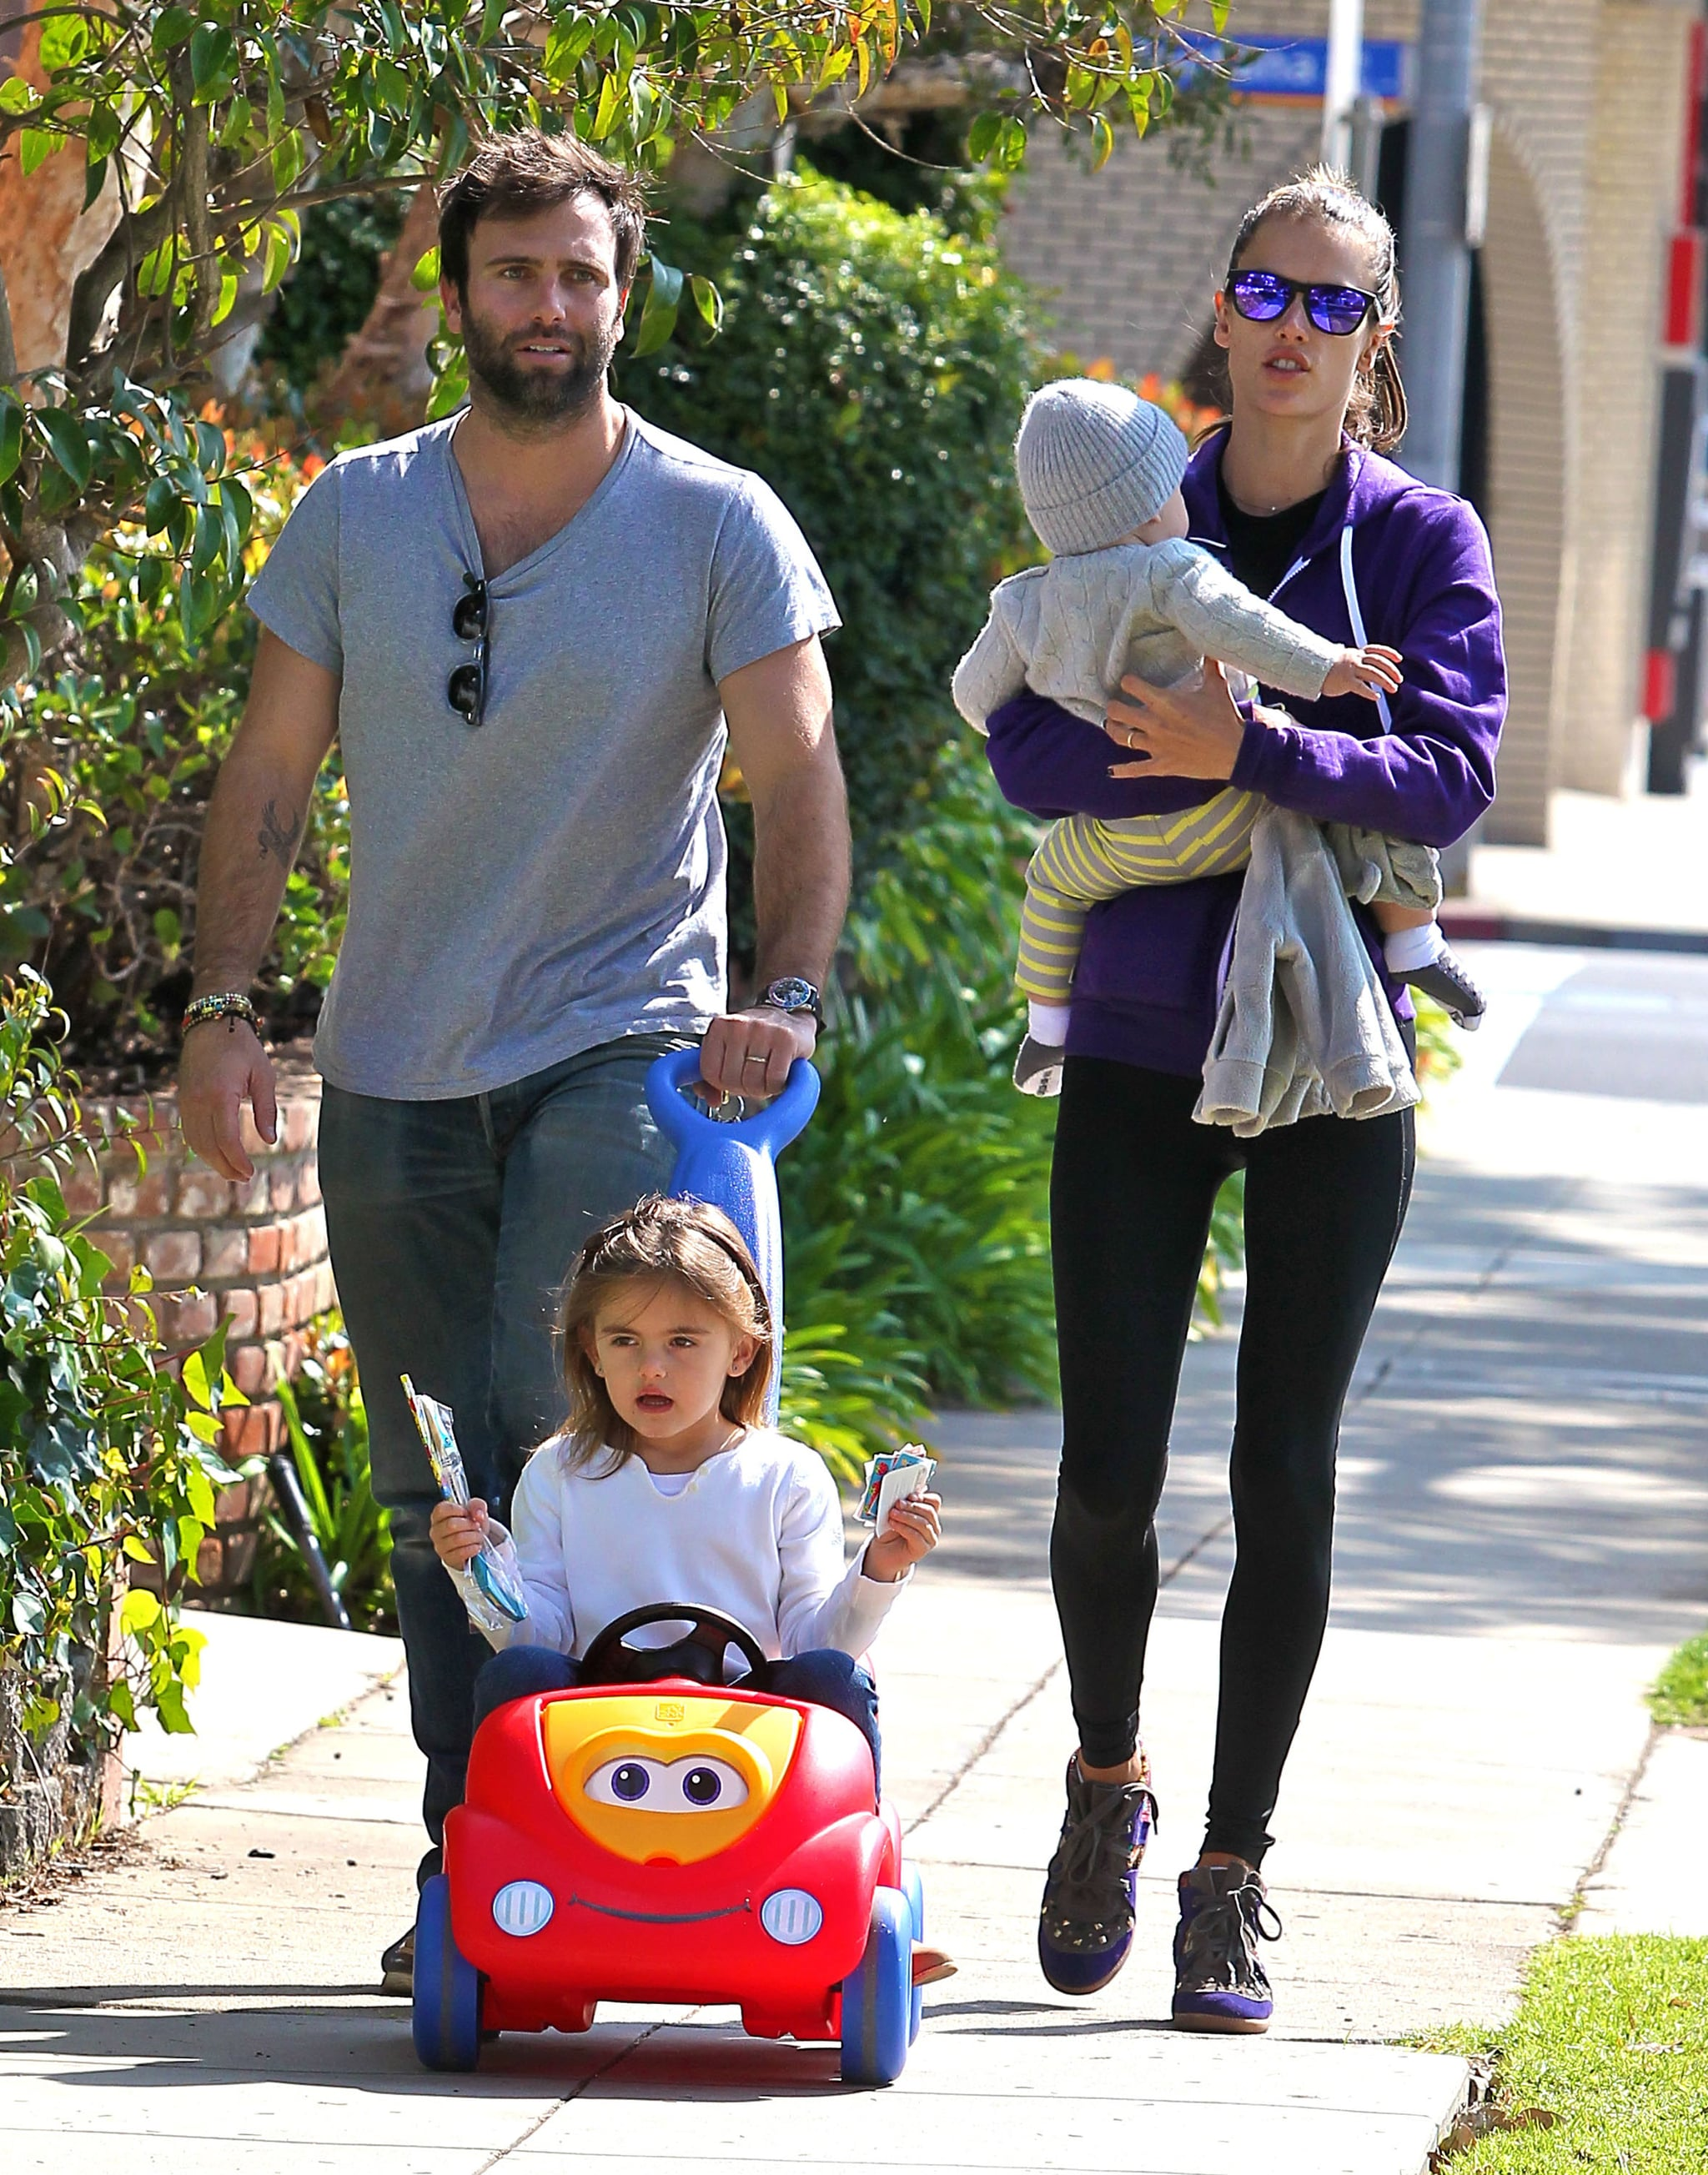 Alessandra Ambrosio and her family spent time together in LA.